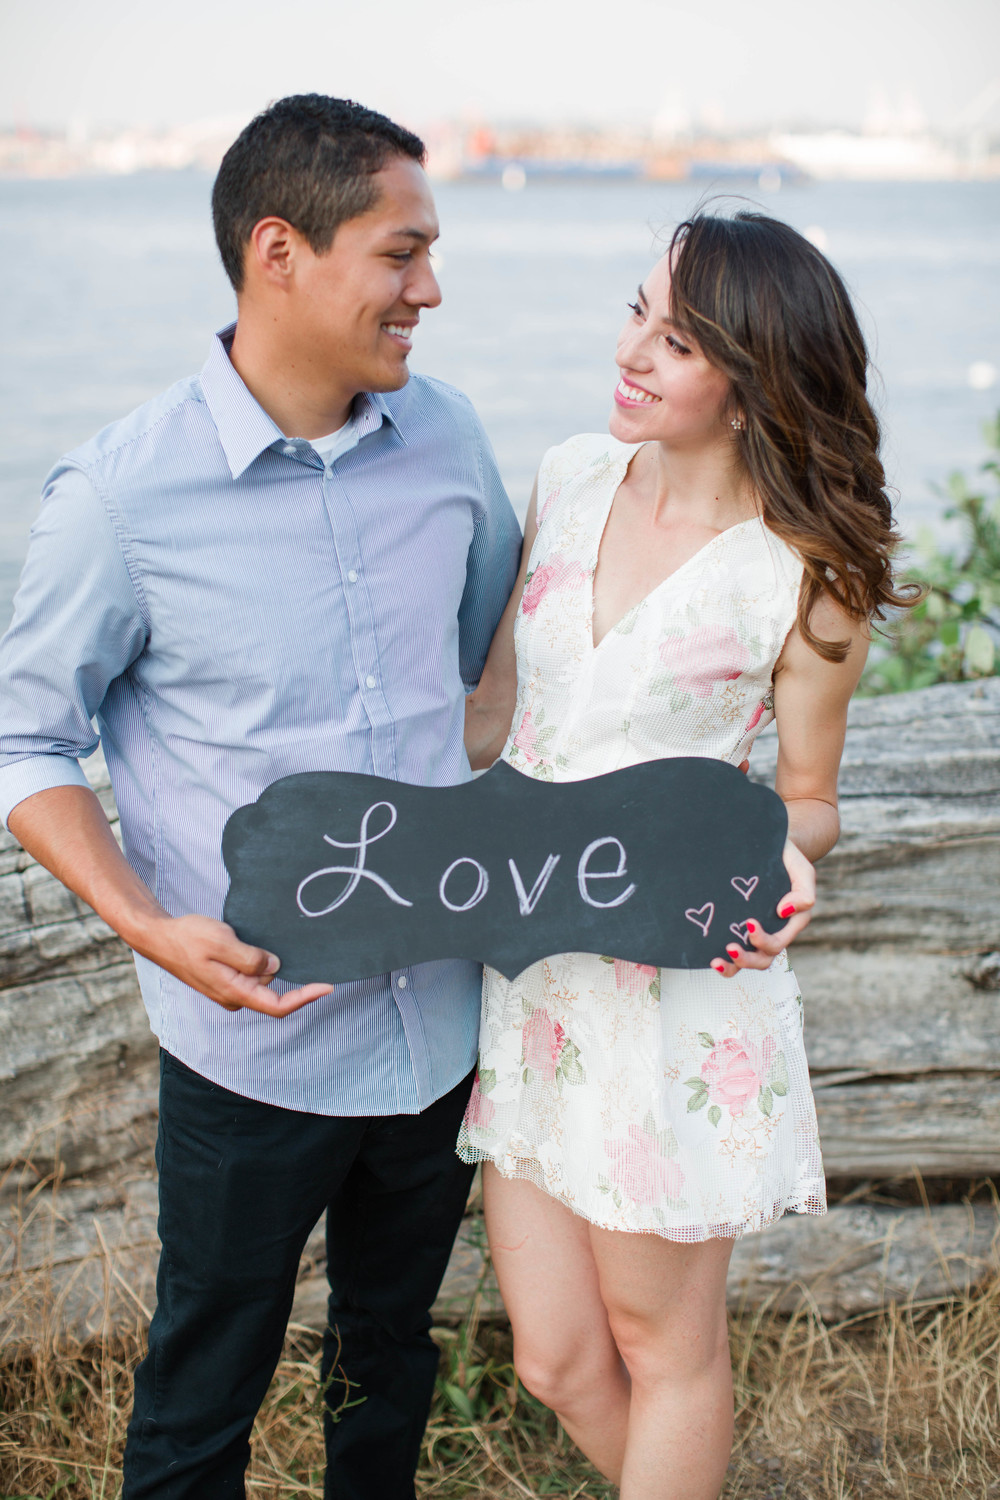 Cruz+Robert ©2015AdinaPrestonPhotography-Seattle+Photographer+Engagement-Weddings-1.jpg